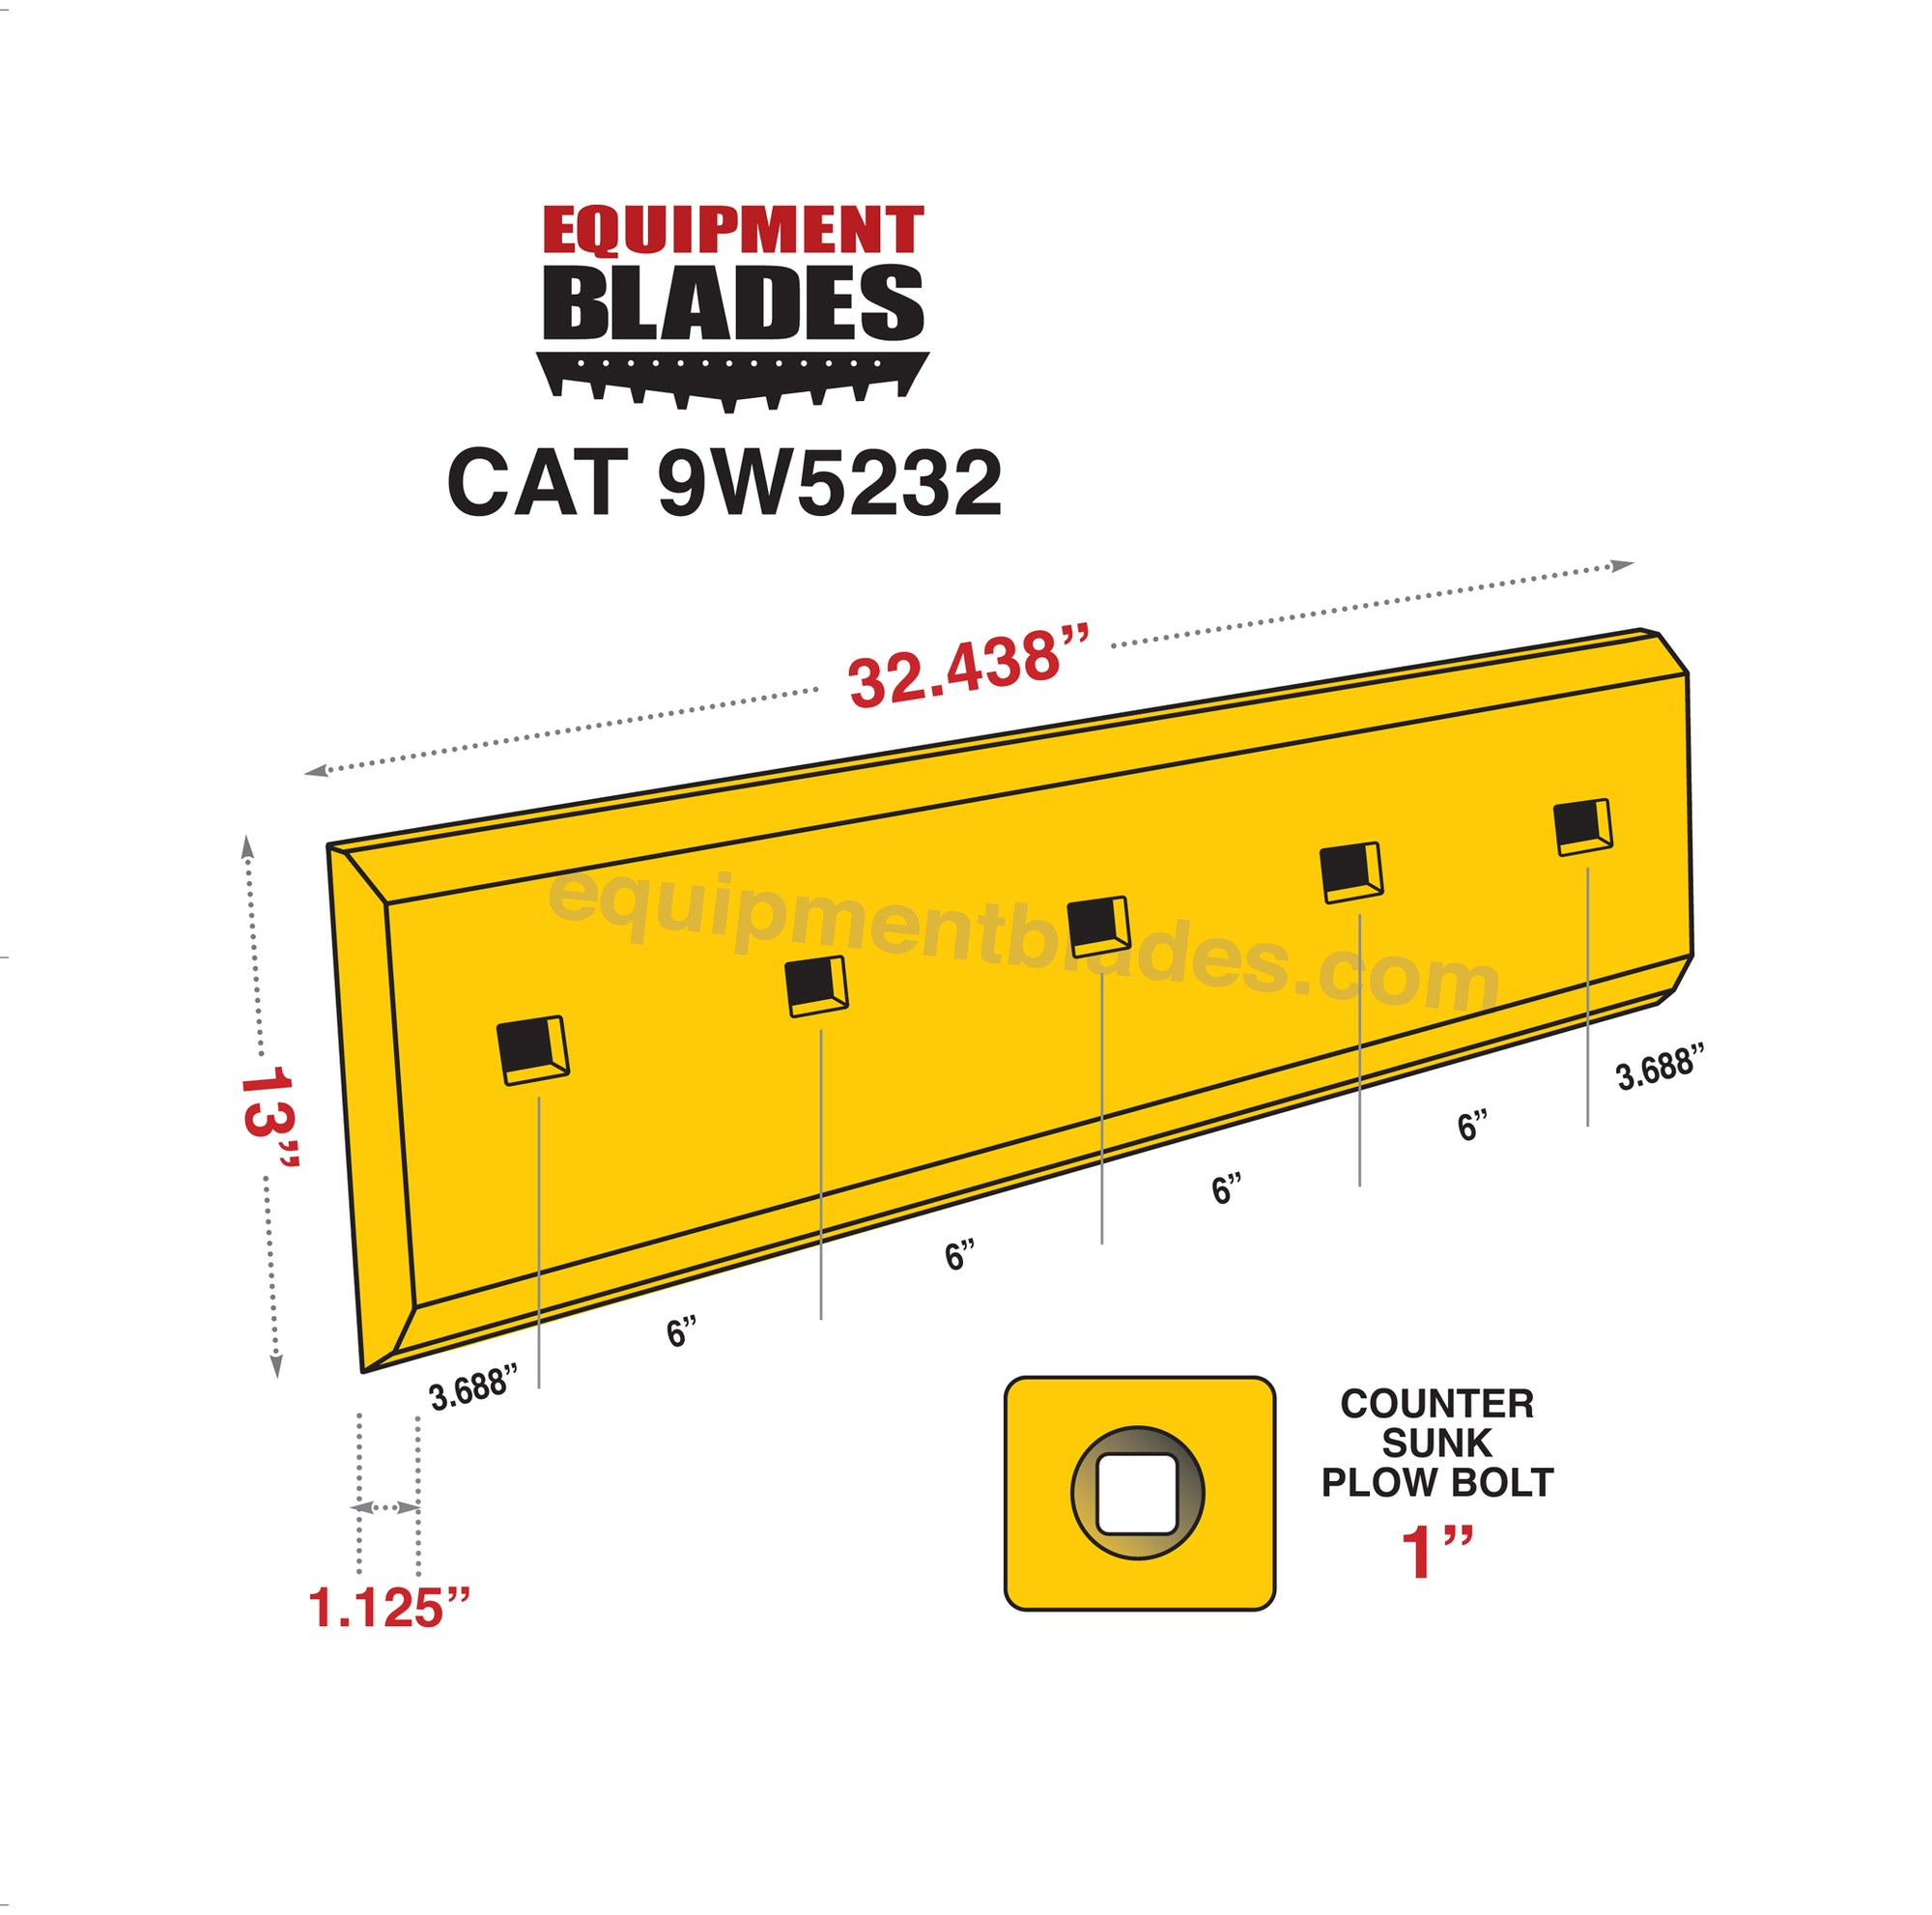 CAT 9W5232-Bull Dozer blades-Equipment Blades Inc-Equipment Blades Inc